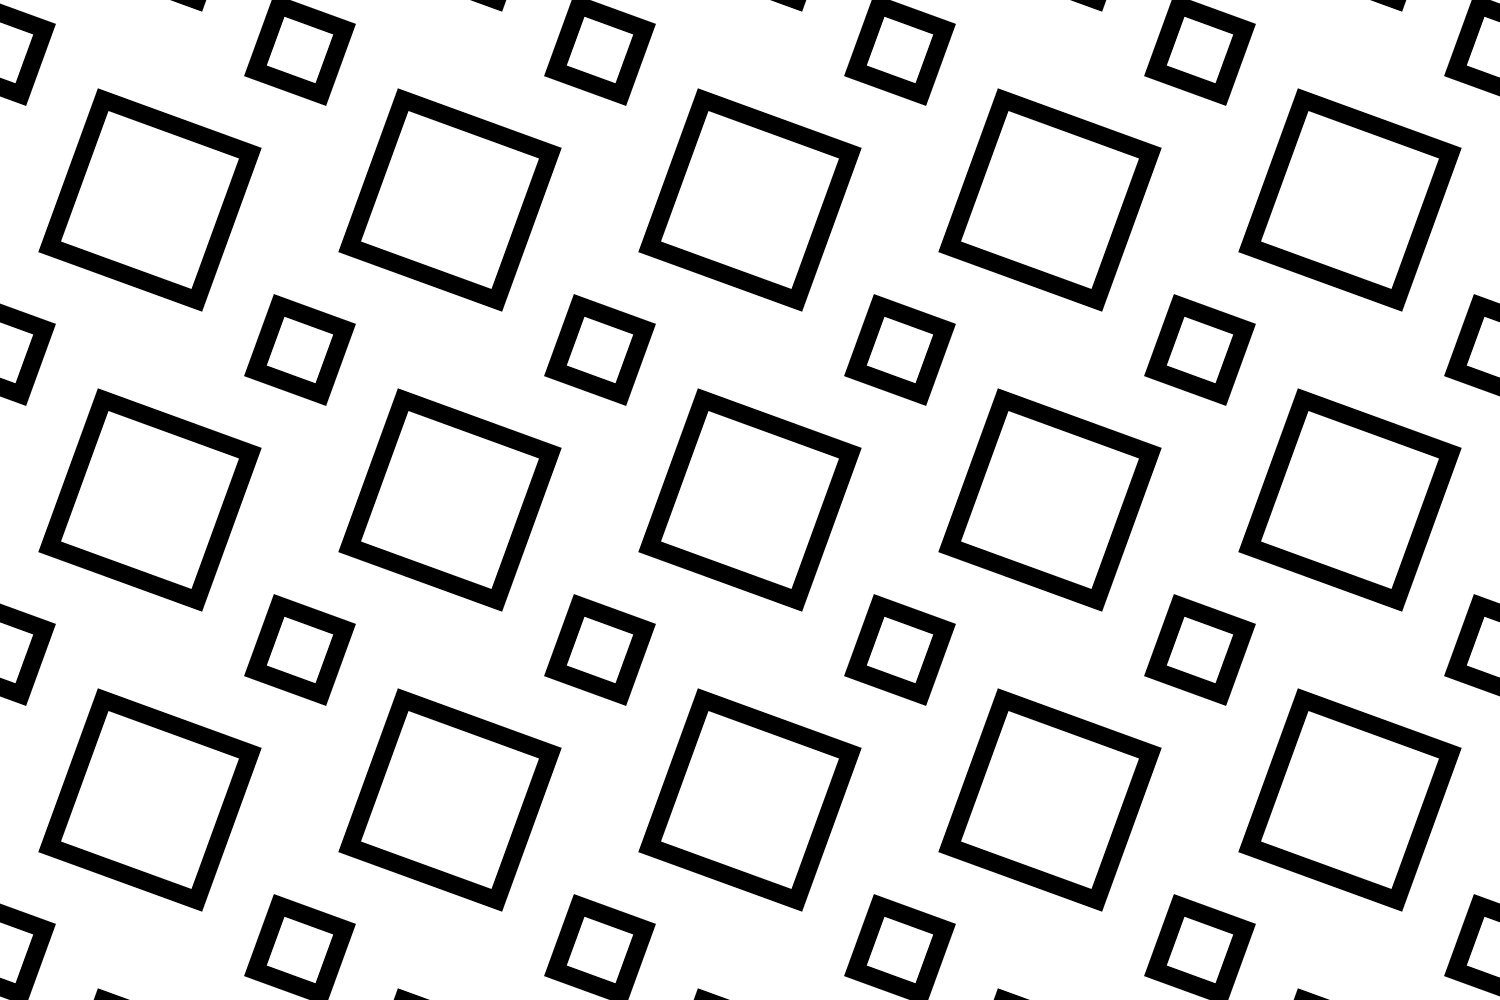 40 Seamless Square Patterns (AI, EPS, JPG 5000x5000) example image 2